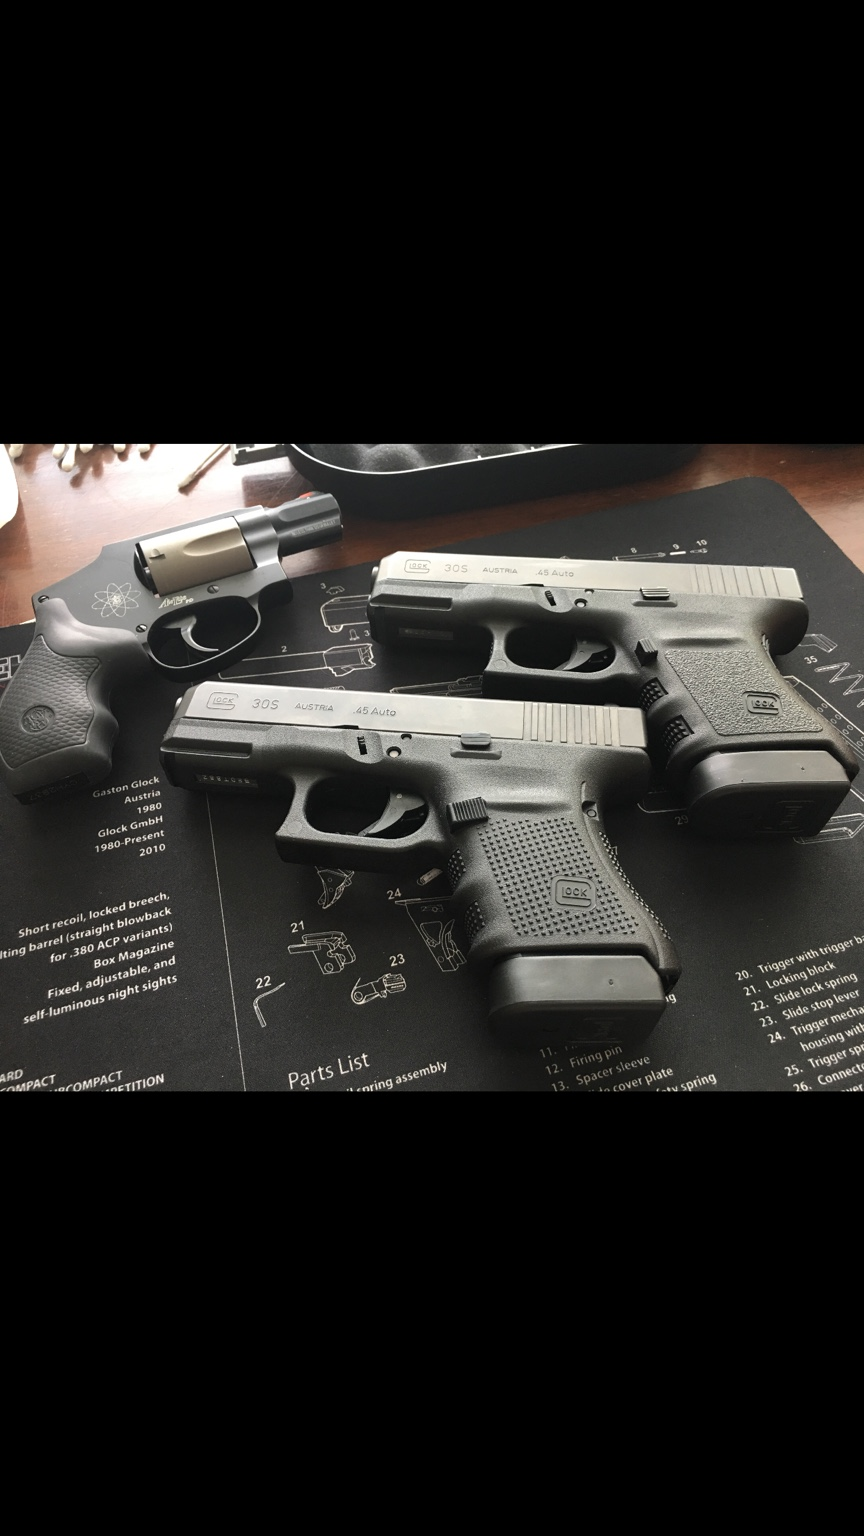 Why should I buy a 4th gen 30 over a 30SF? - Glock Forum